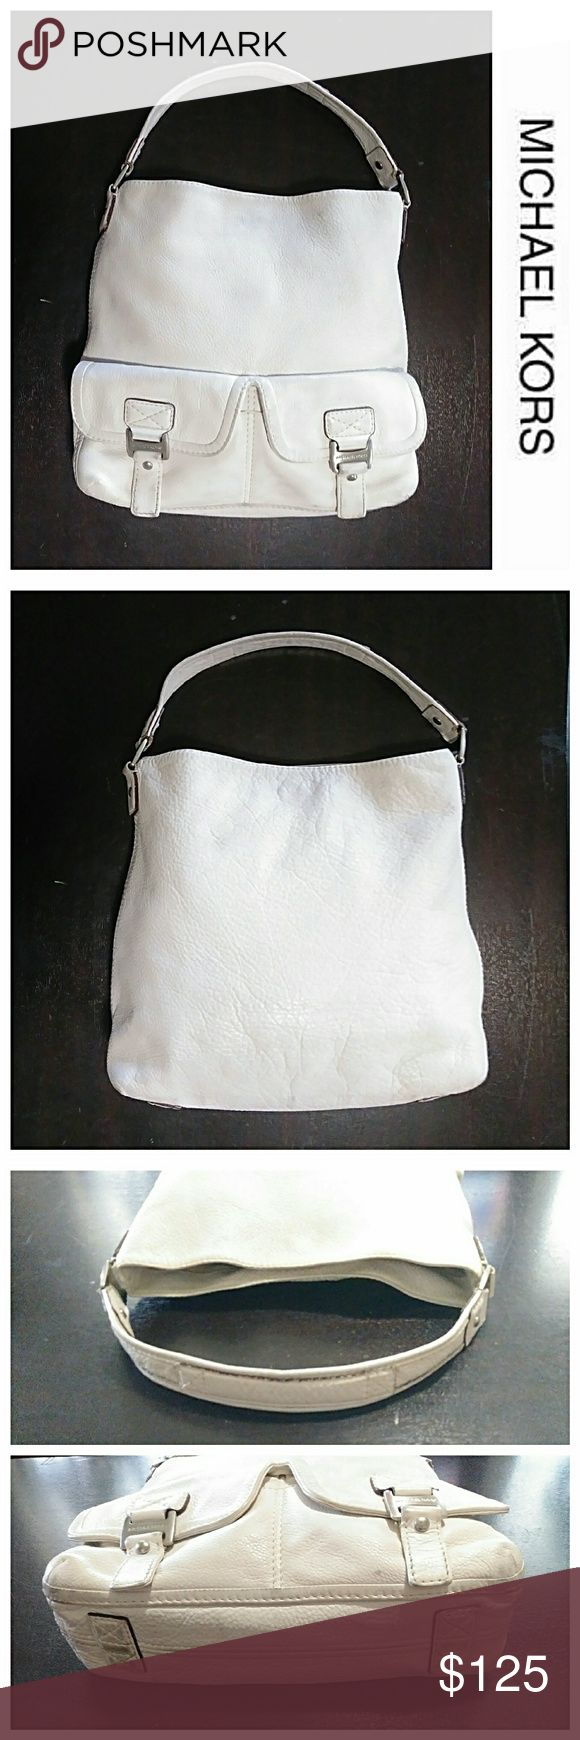 "MK Pebbled Leather Slouch Hobo Bag Authentic MK bag made of thick pebbled leather. The body is white and the hardware is silver. As you can see there are some obvious blemishes, but it's great shape overall. Measures 12"" H x 14"" L + 6"" strap drop. 💥 Reasonable Offers Accepted 💥 Michael Kors Bags Hobos"